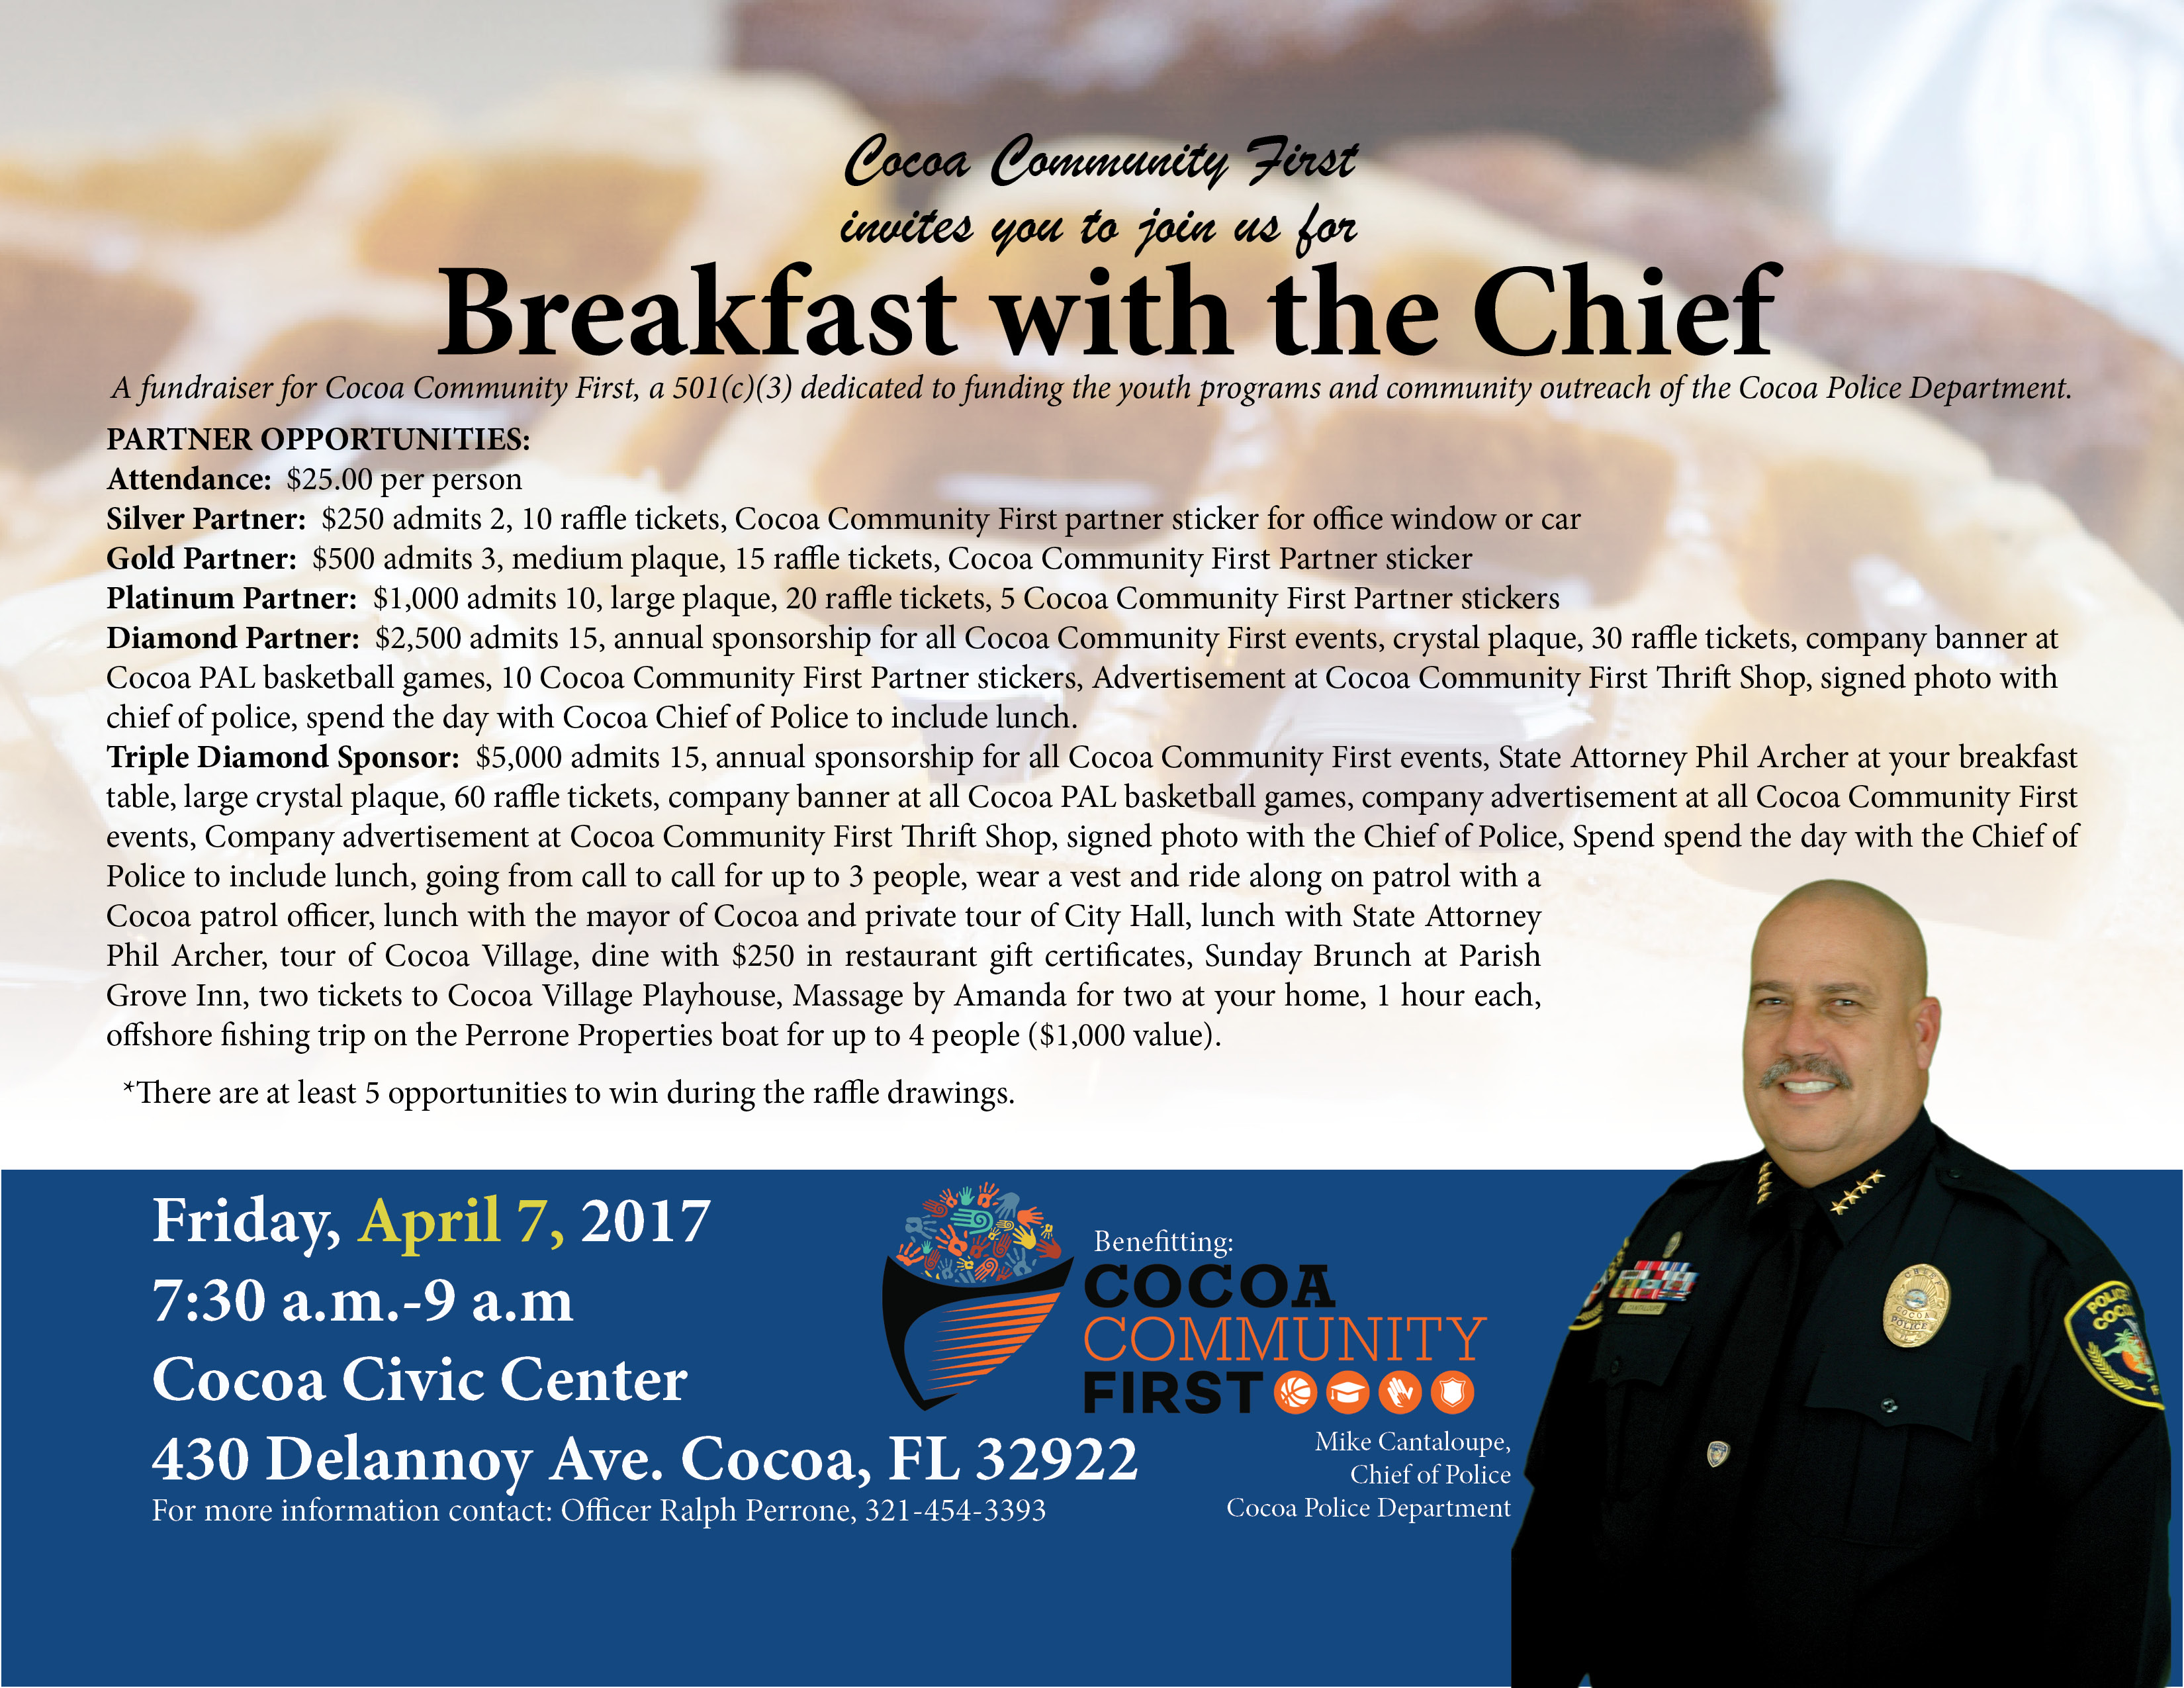 breakfast invite and sponsor opportunities.jpg